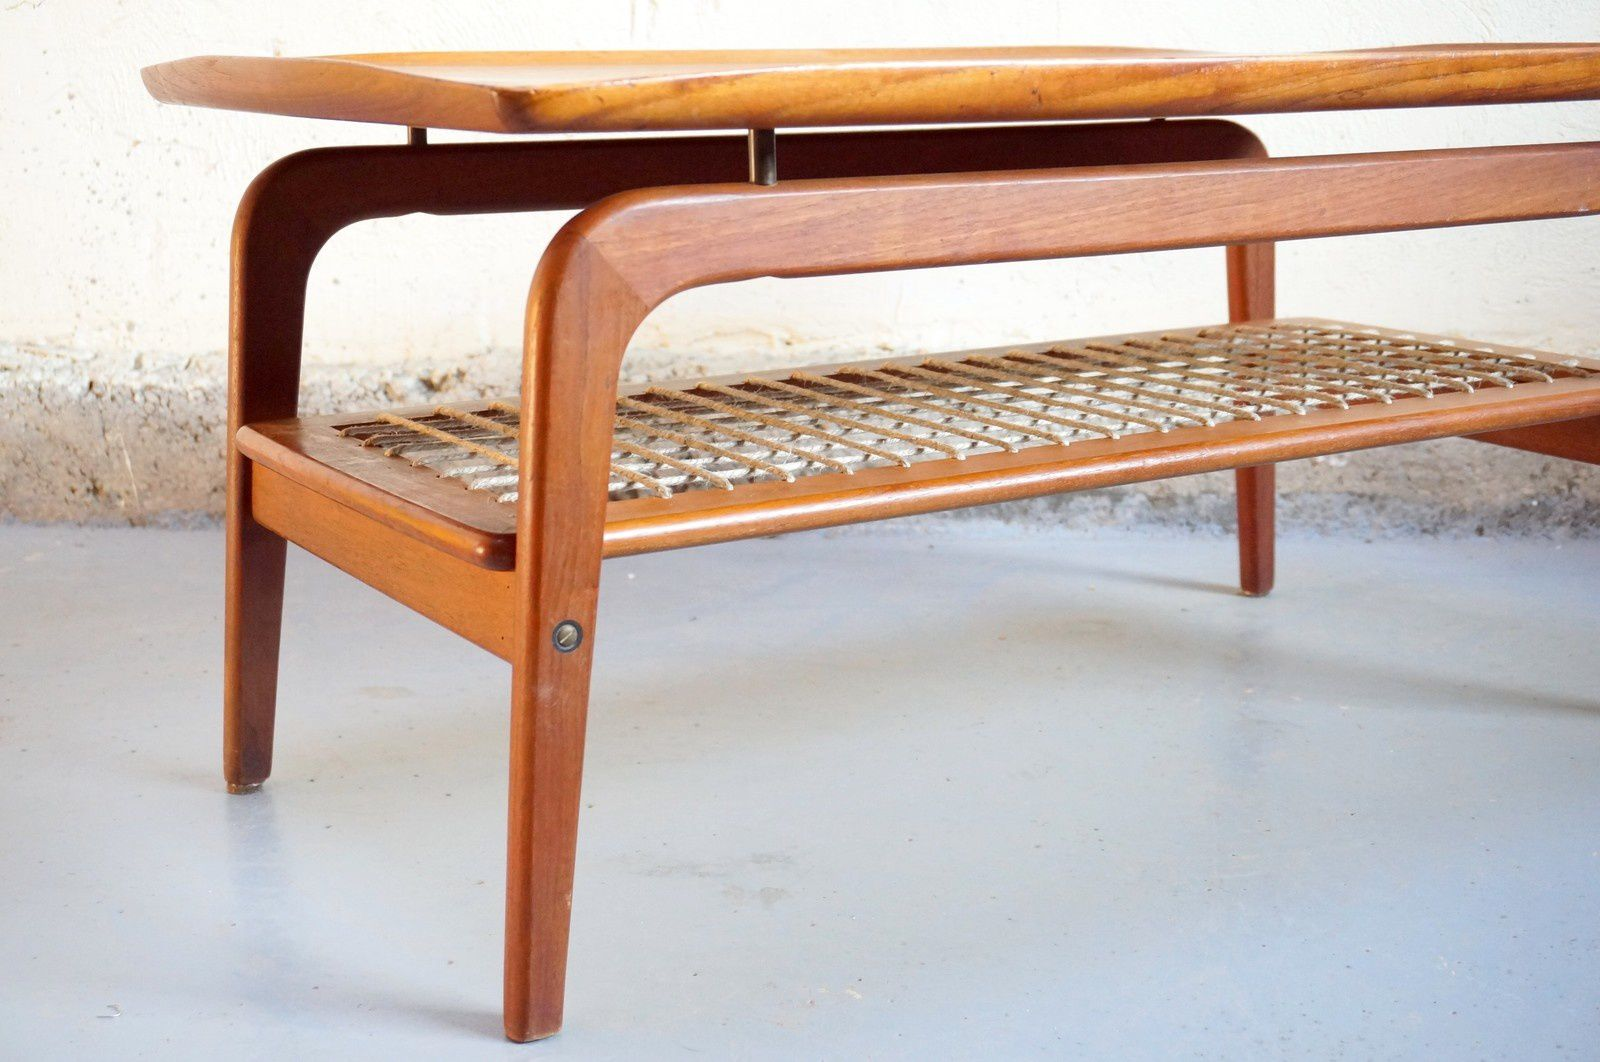 Vendu table basse scandinave danois design teck vintage - Table basse scandinave annee 50 ...